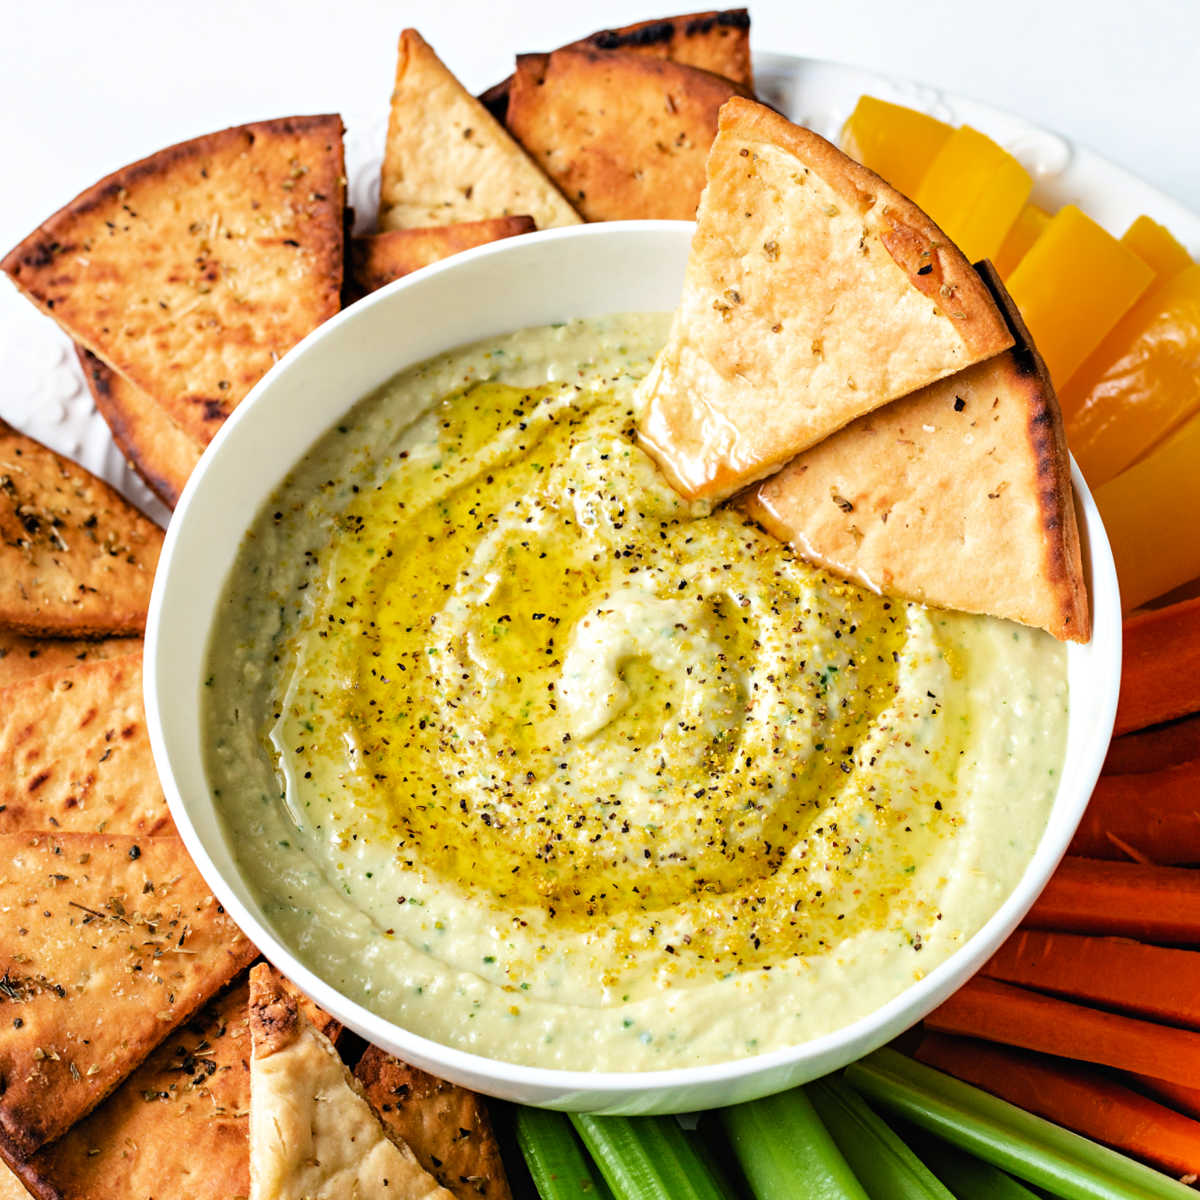 a bow of white bean hummus garnished with lemon pepper seasoning and olive oil on a platter with pita chips and veggie sticks.